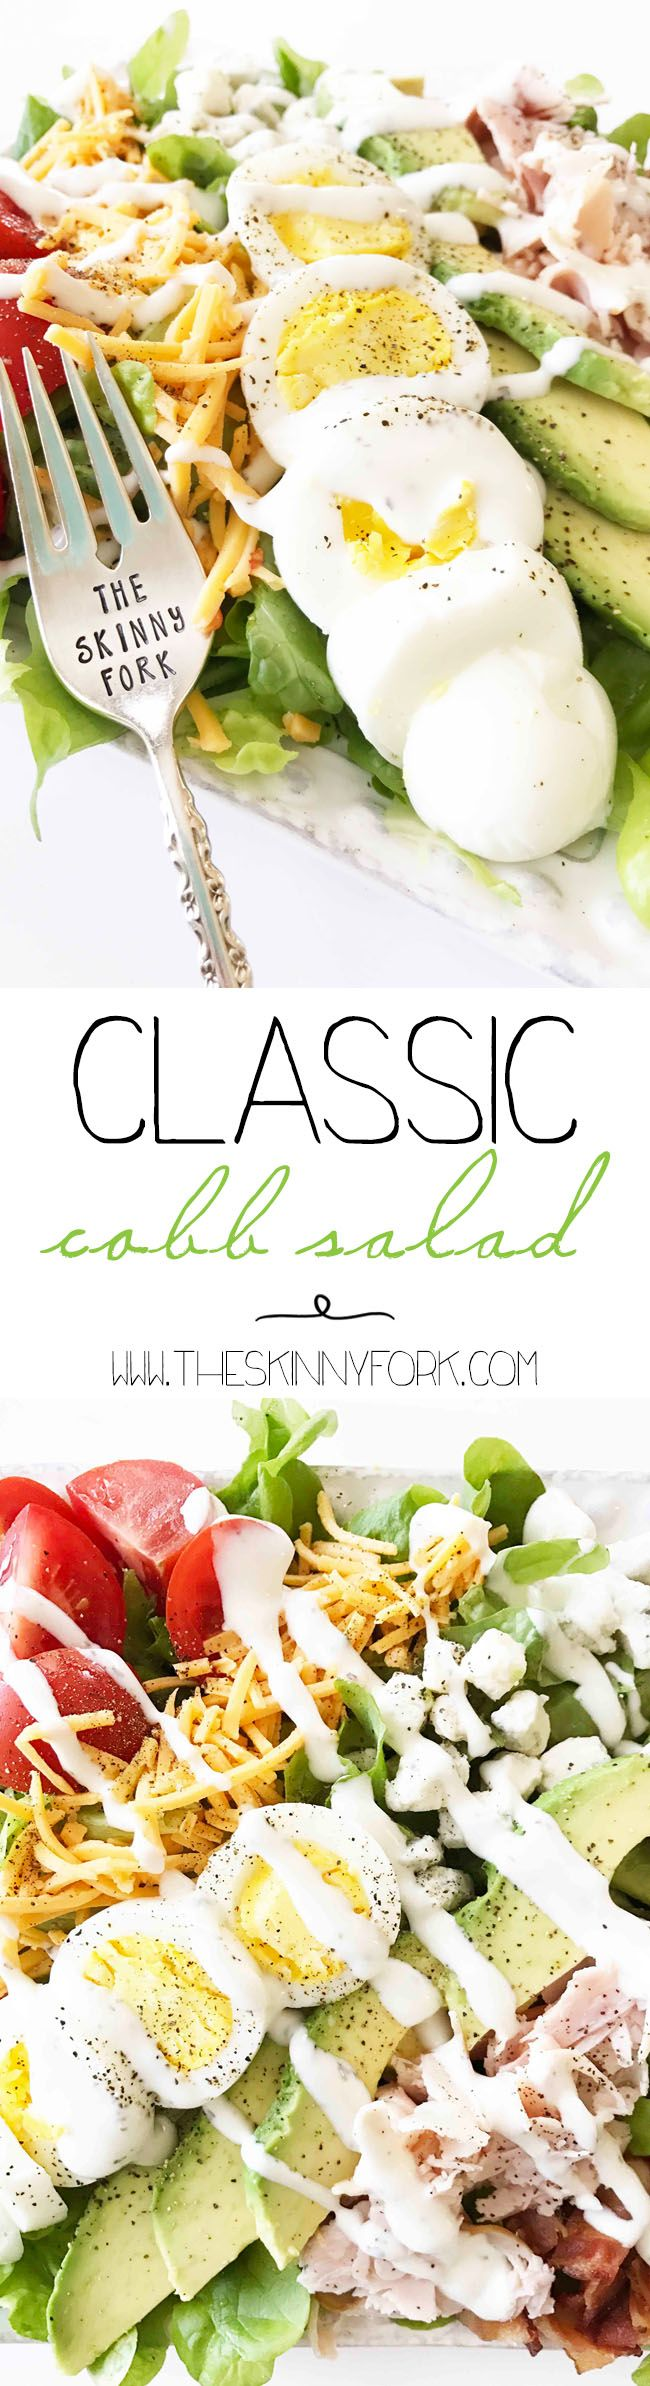 This is a lightened up version of the most classic of salads, the Cobb Salad! Don't worry though! It's still just as full of flavor with all of the traditional ingredients in a more wholesome fashion. TheSkinnyFork.com | Skinny & Healthy Recipes